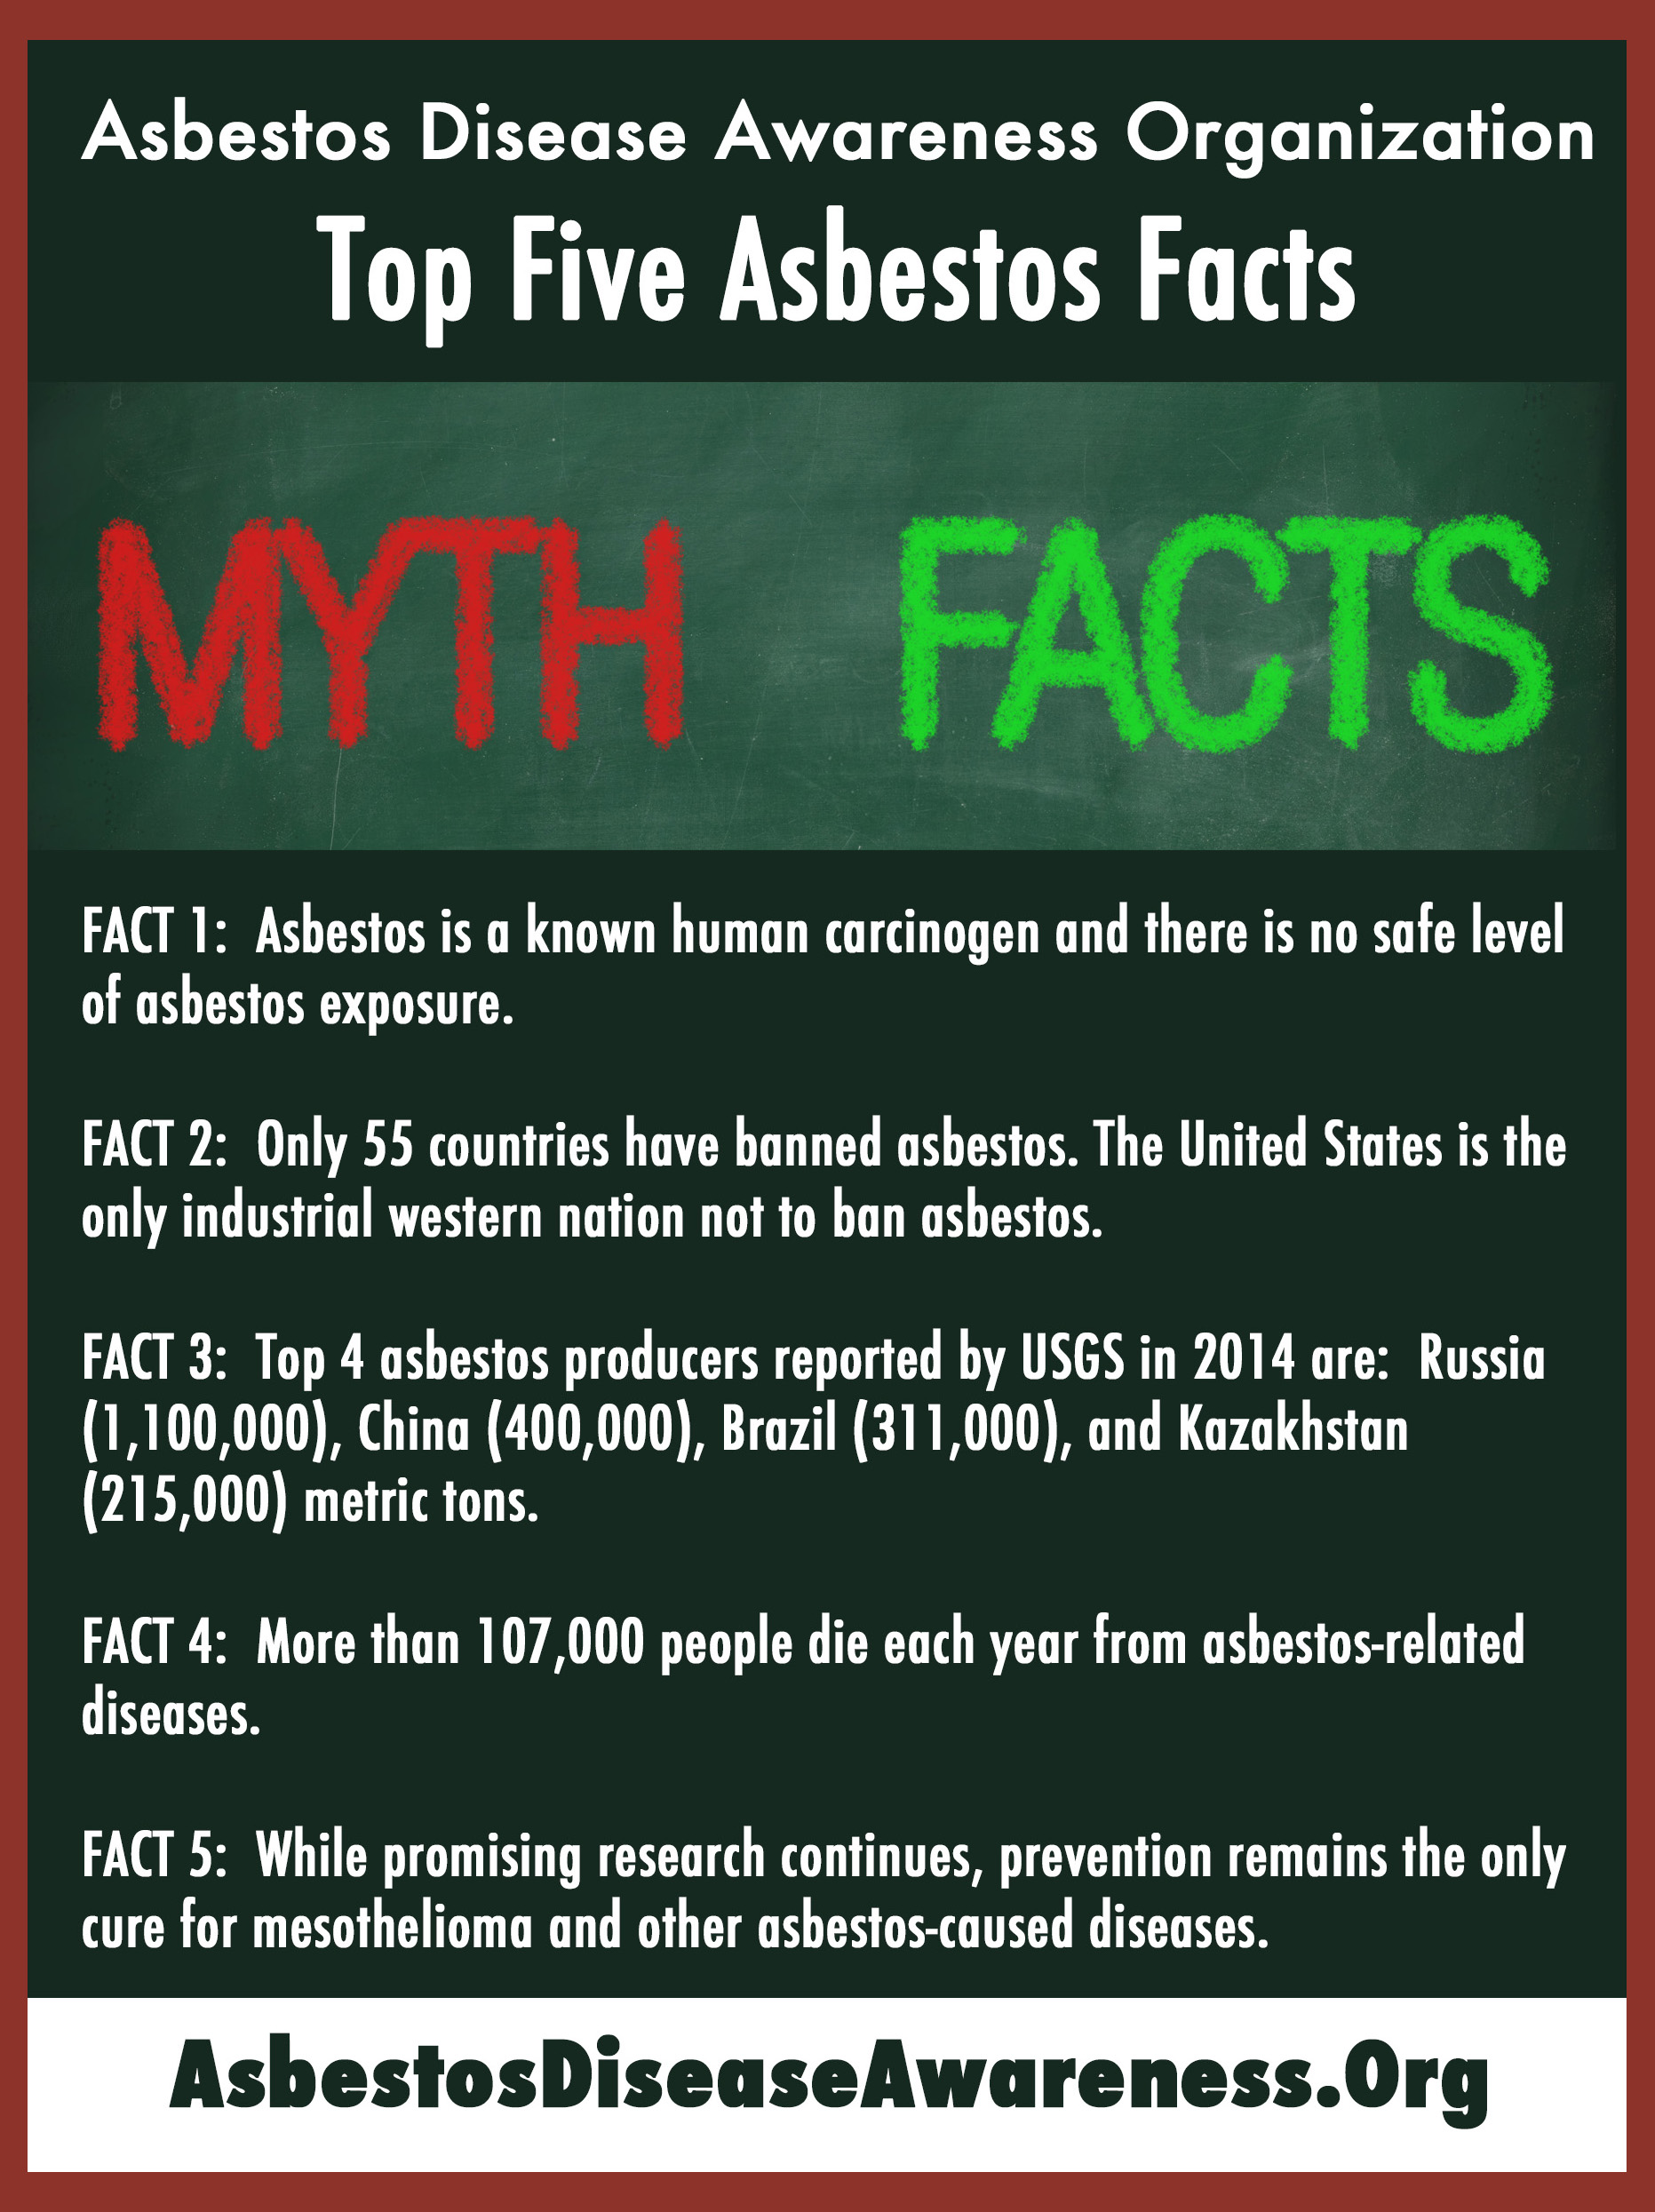 Asbestos Disease Awareness Organization Top Five Asbestos